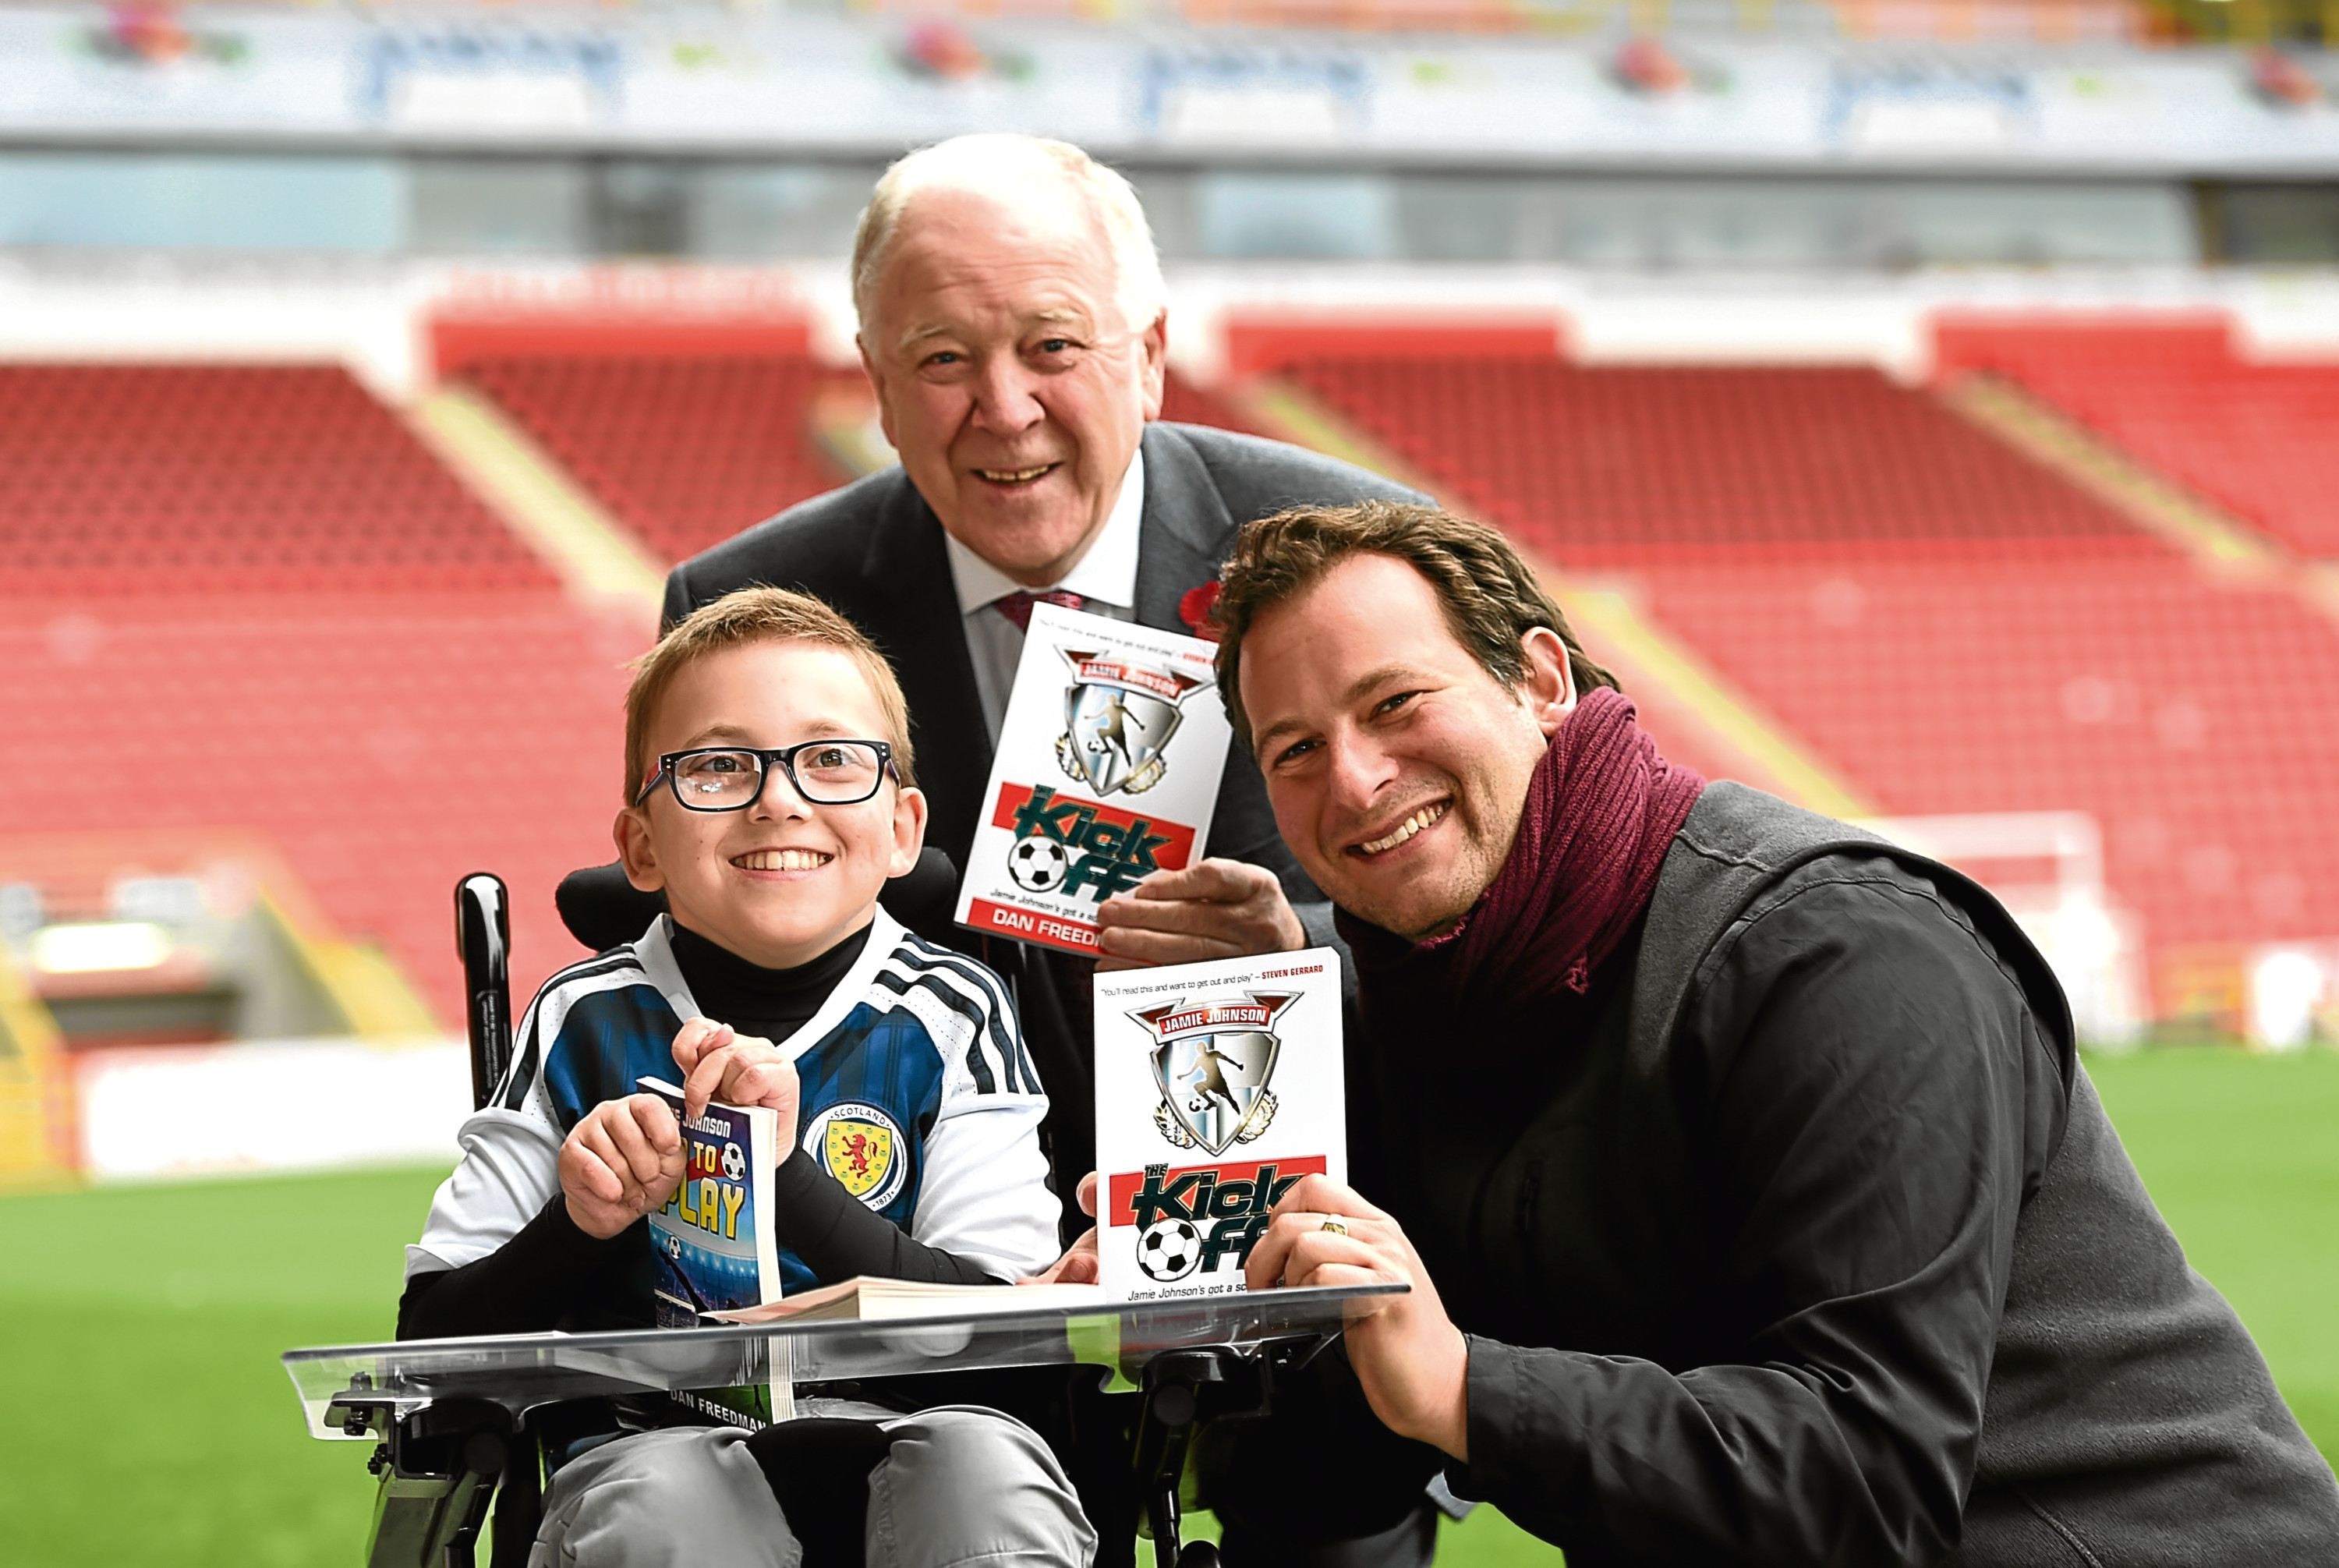 Former Scotland manager Craig Brown, Finlay Sangster, 12 and author Dan Freedman at Pittodrie Stadium, Aberdeen